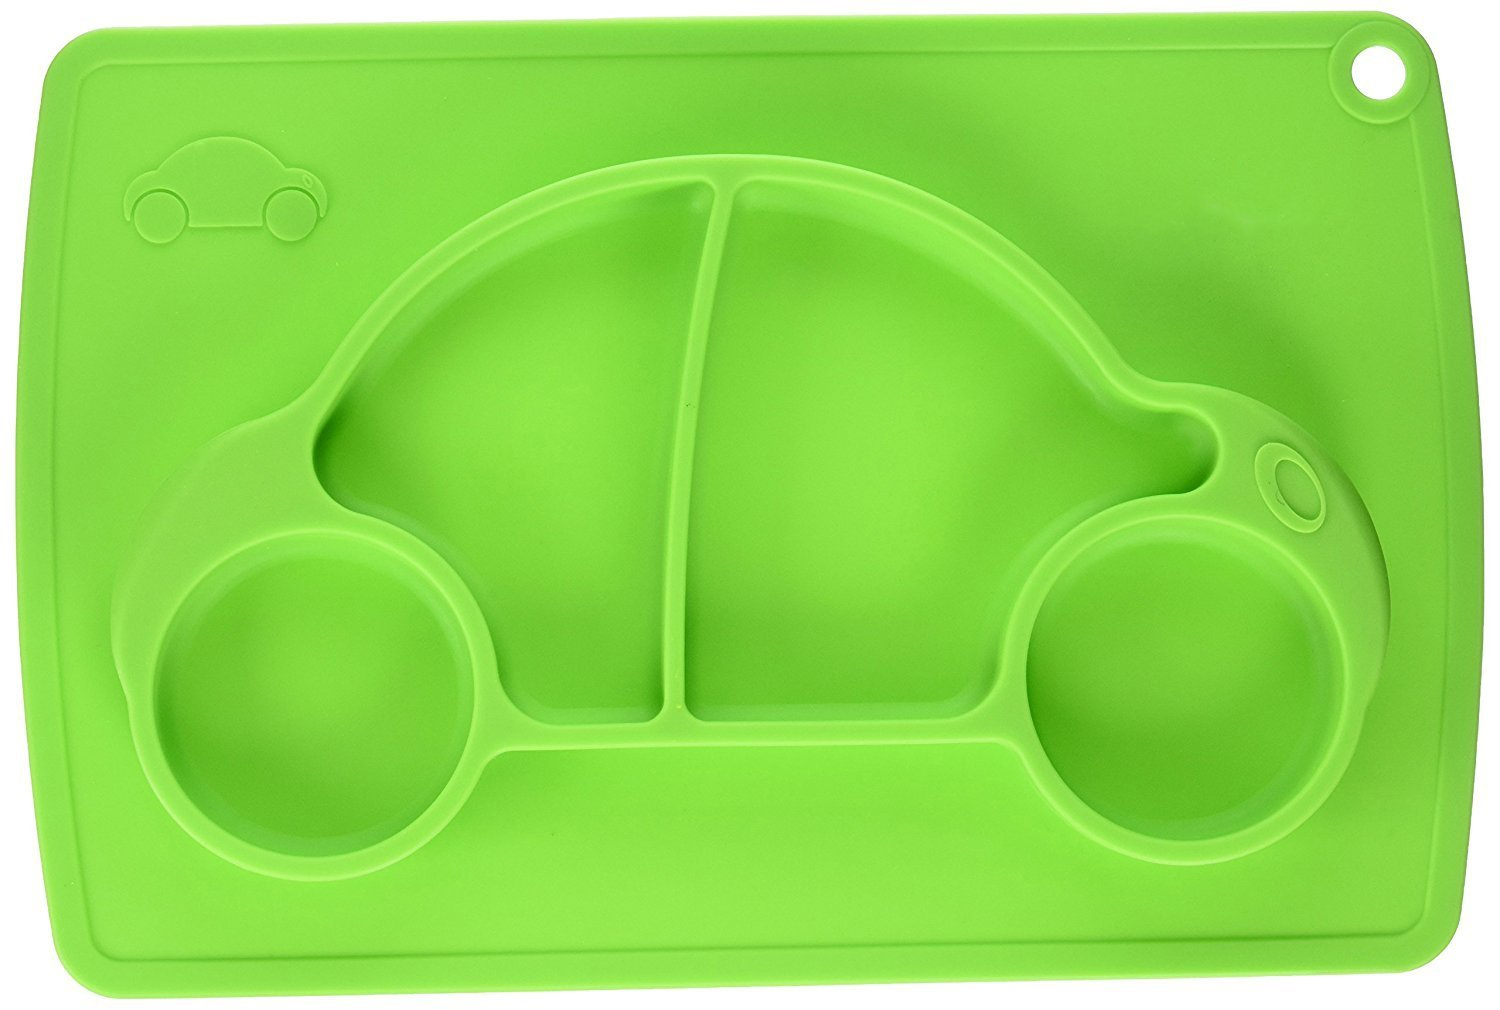 Car Silicone Baby Placemat Square Green B072614XXX